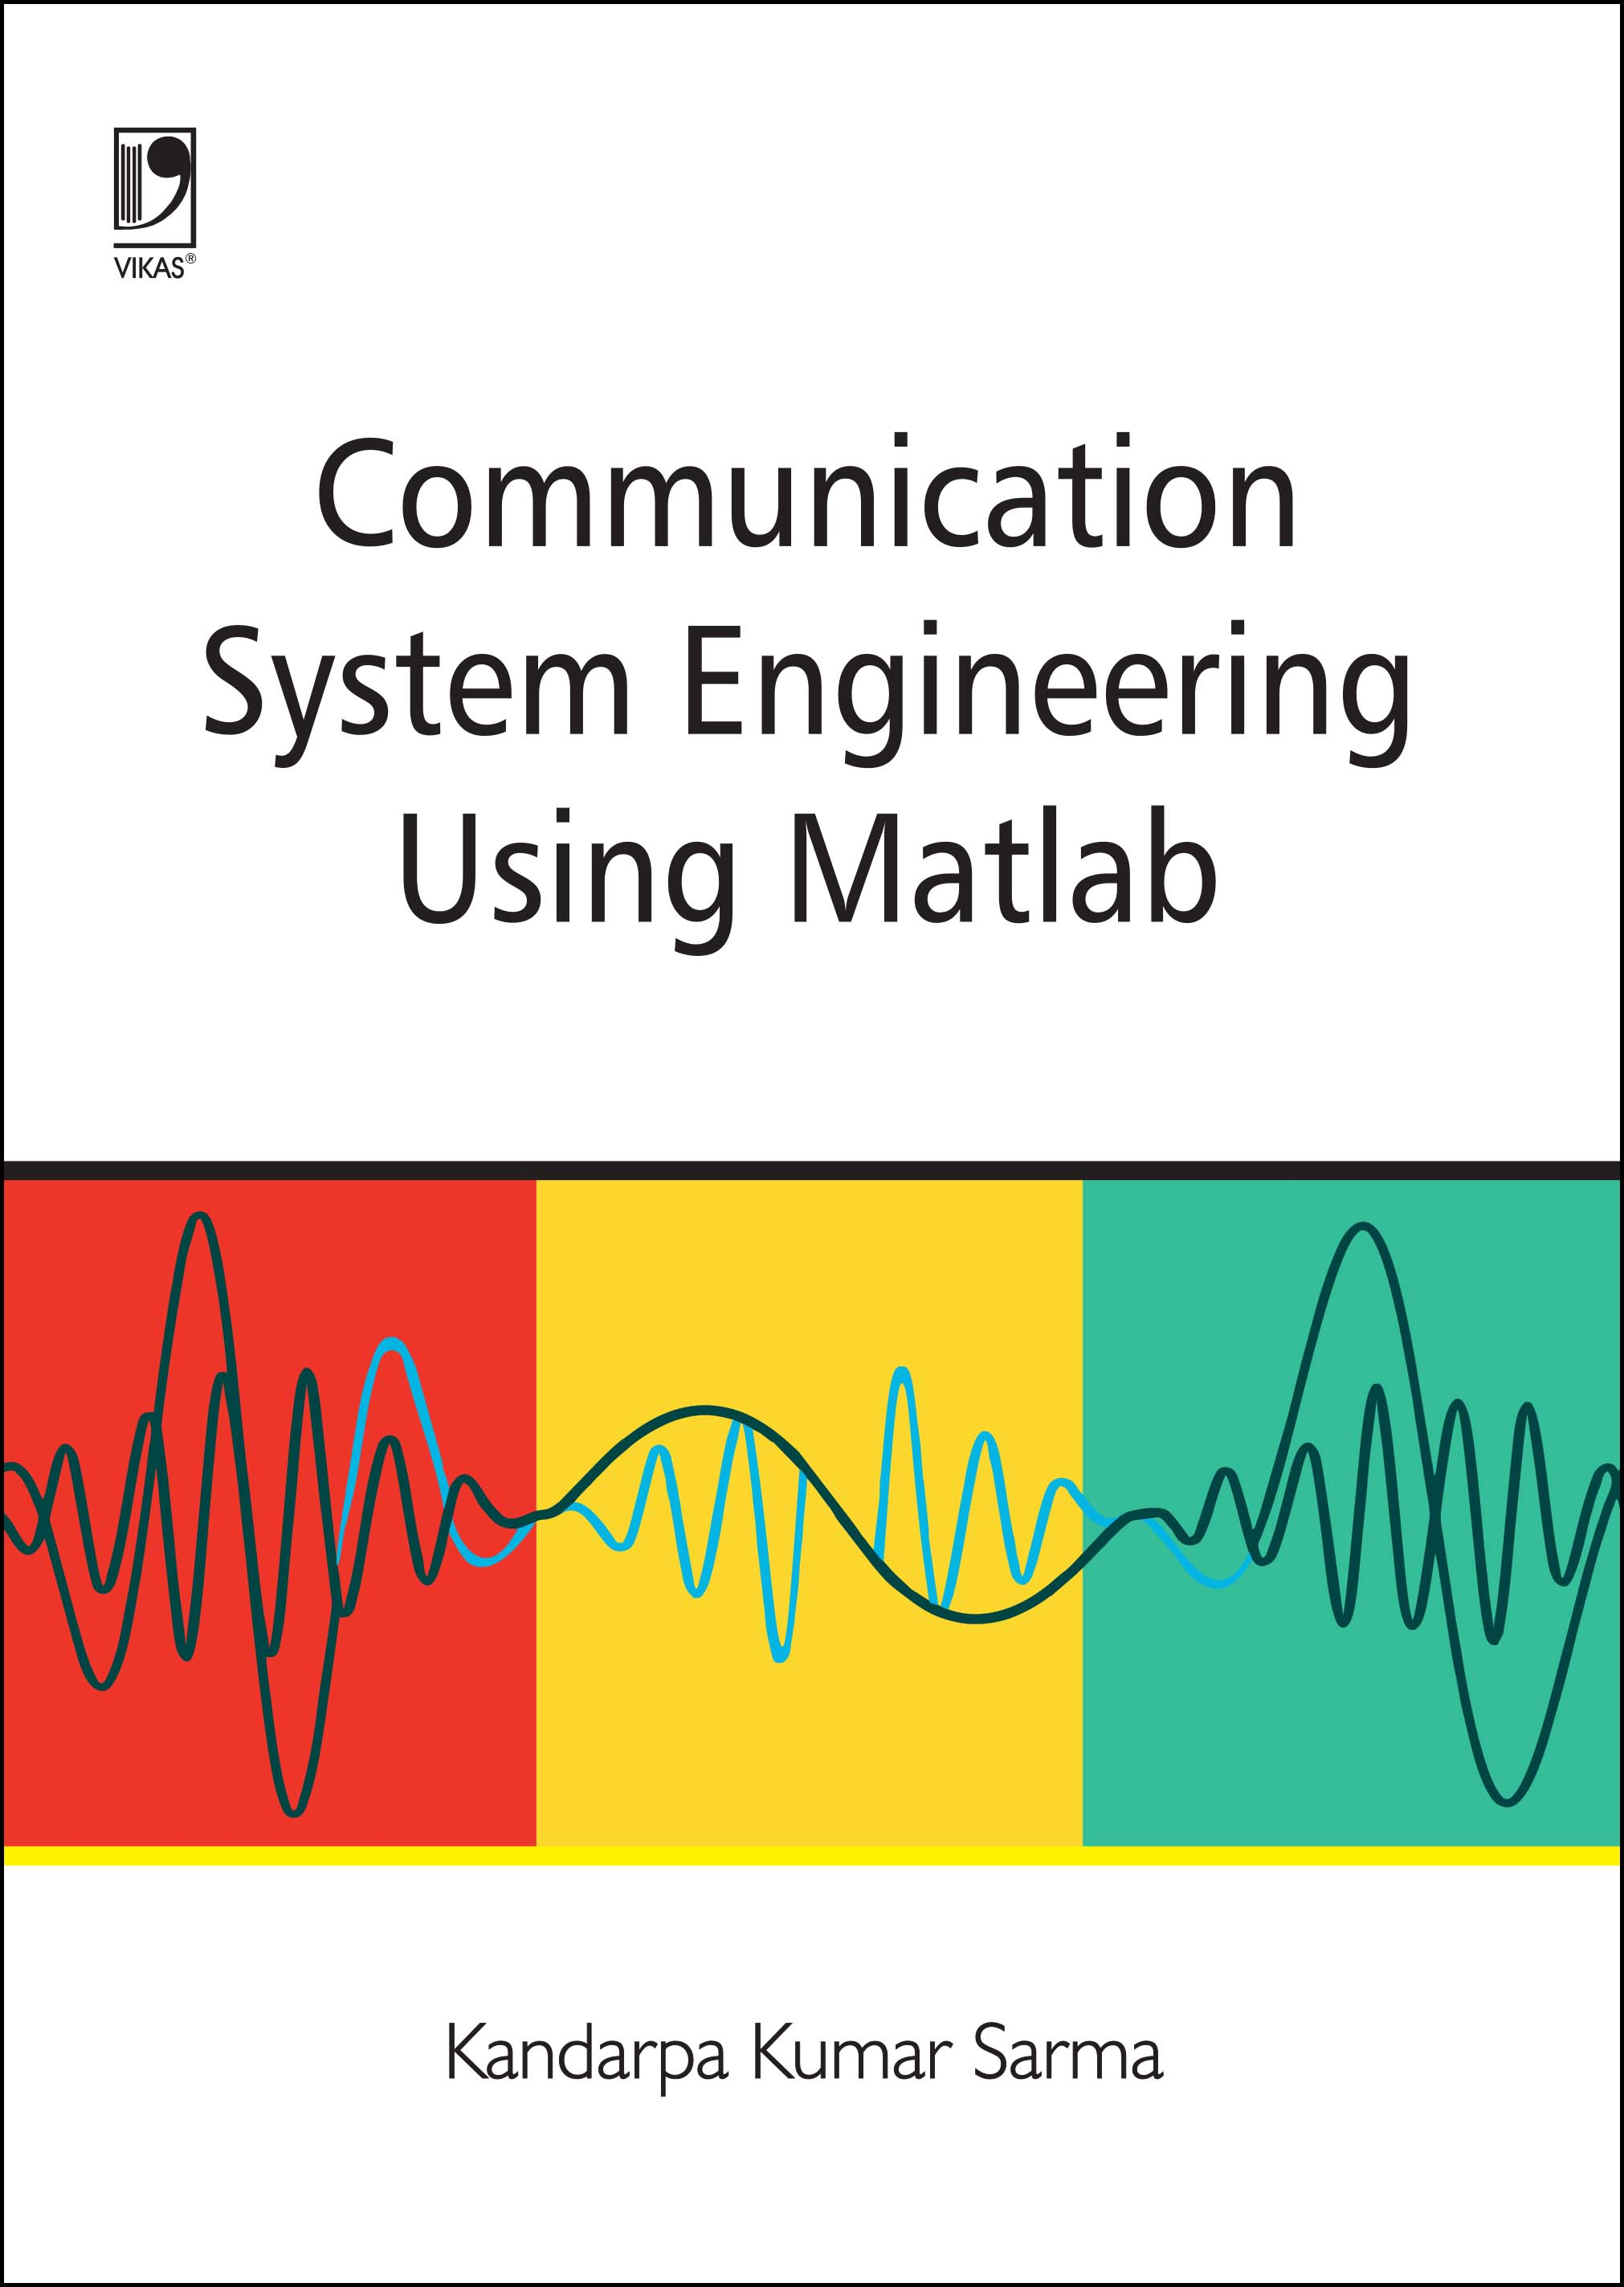 COMMUNICATION SYSTEM ENGINEERING USING MATLAB